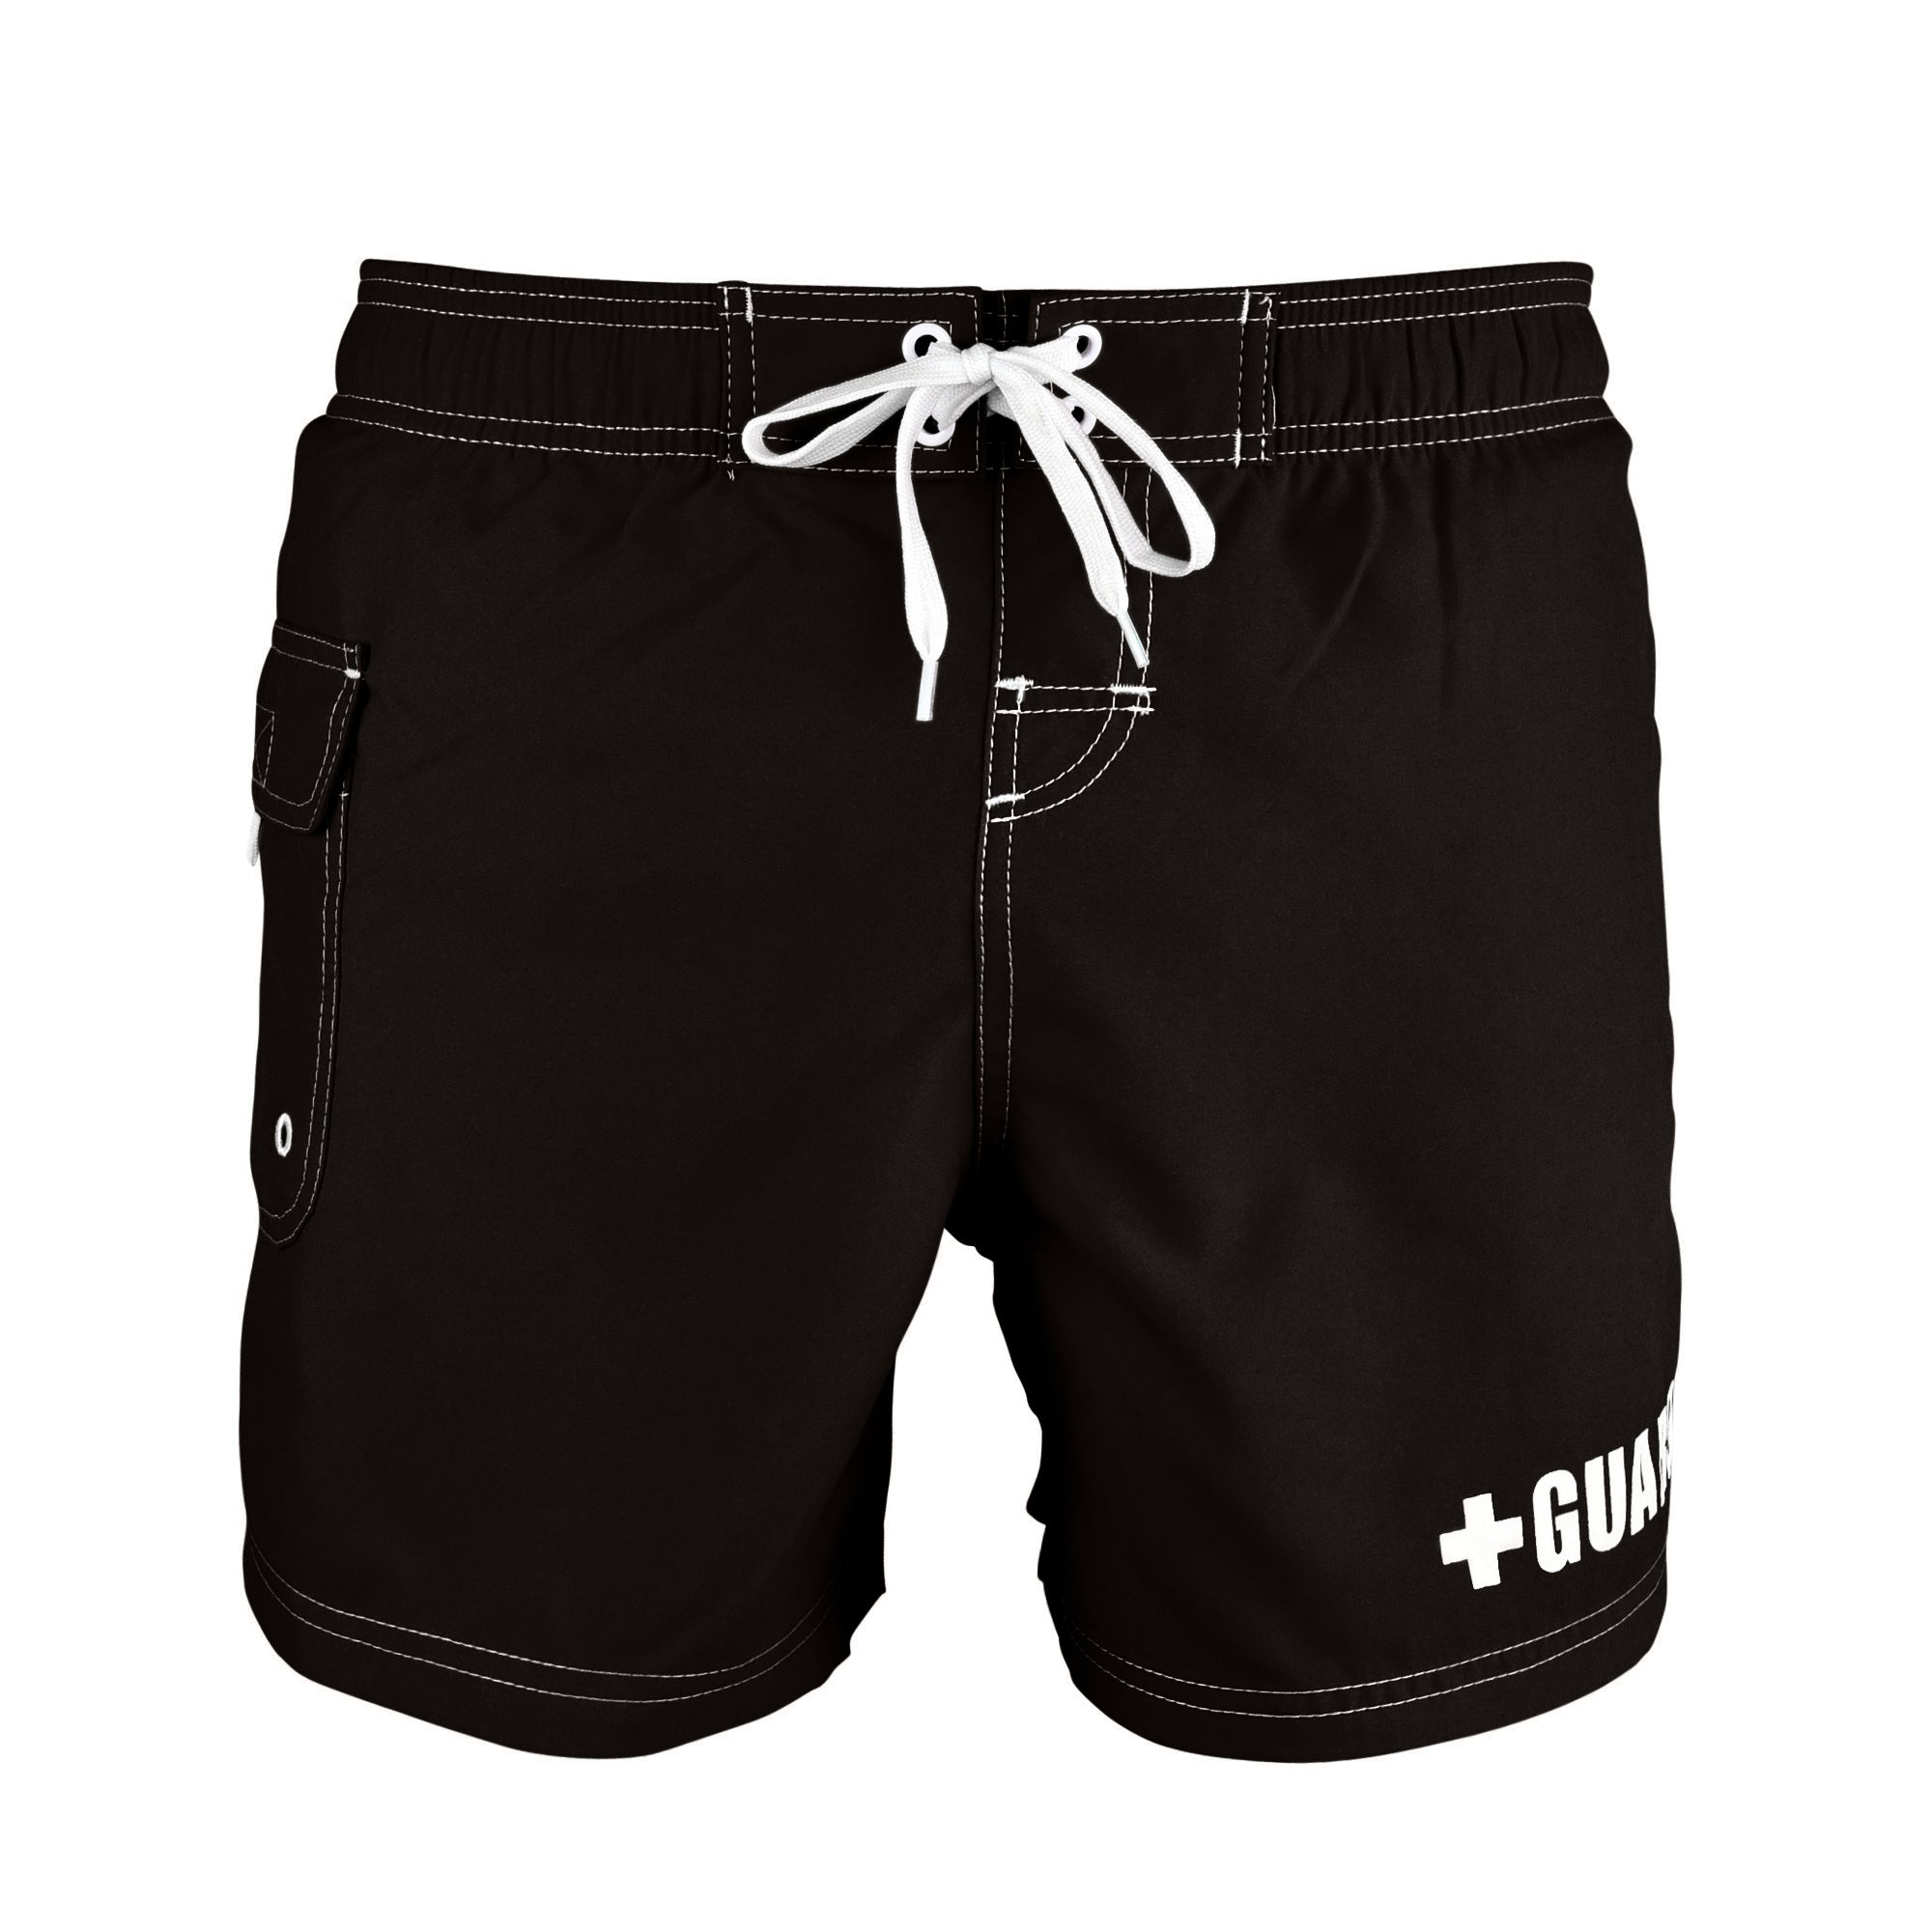 Lifeguard Women's Board Shorts - BLARIX